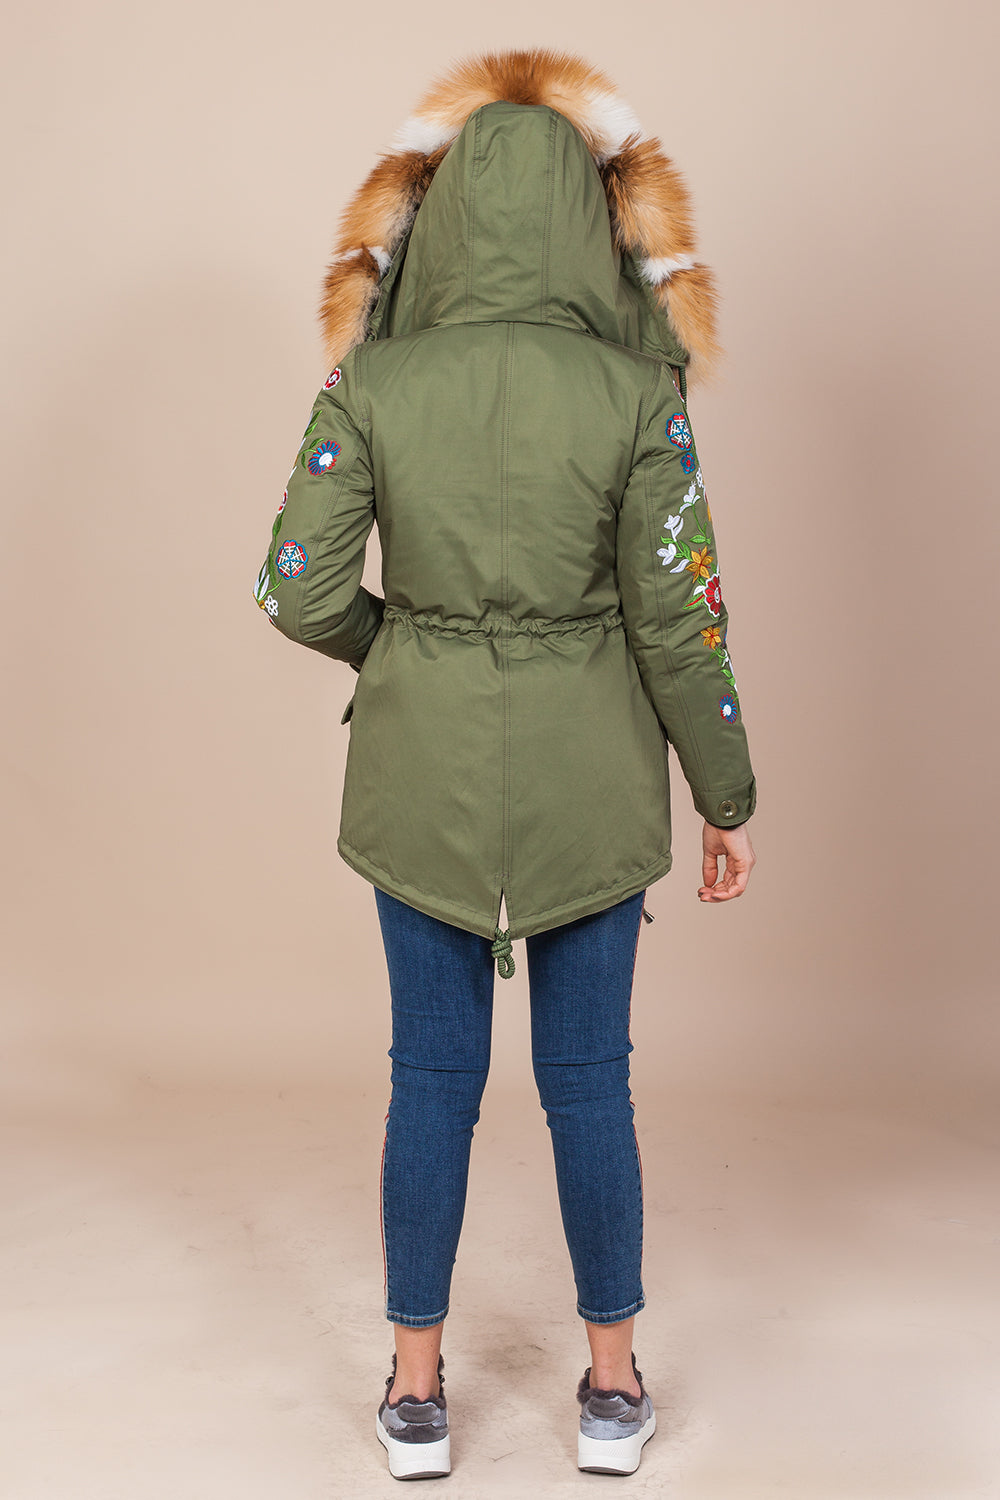 Green Mini Parka Main Fabric is Waterproof / Raincoat Fabric With Mixed Gold Fox